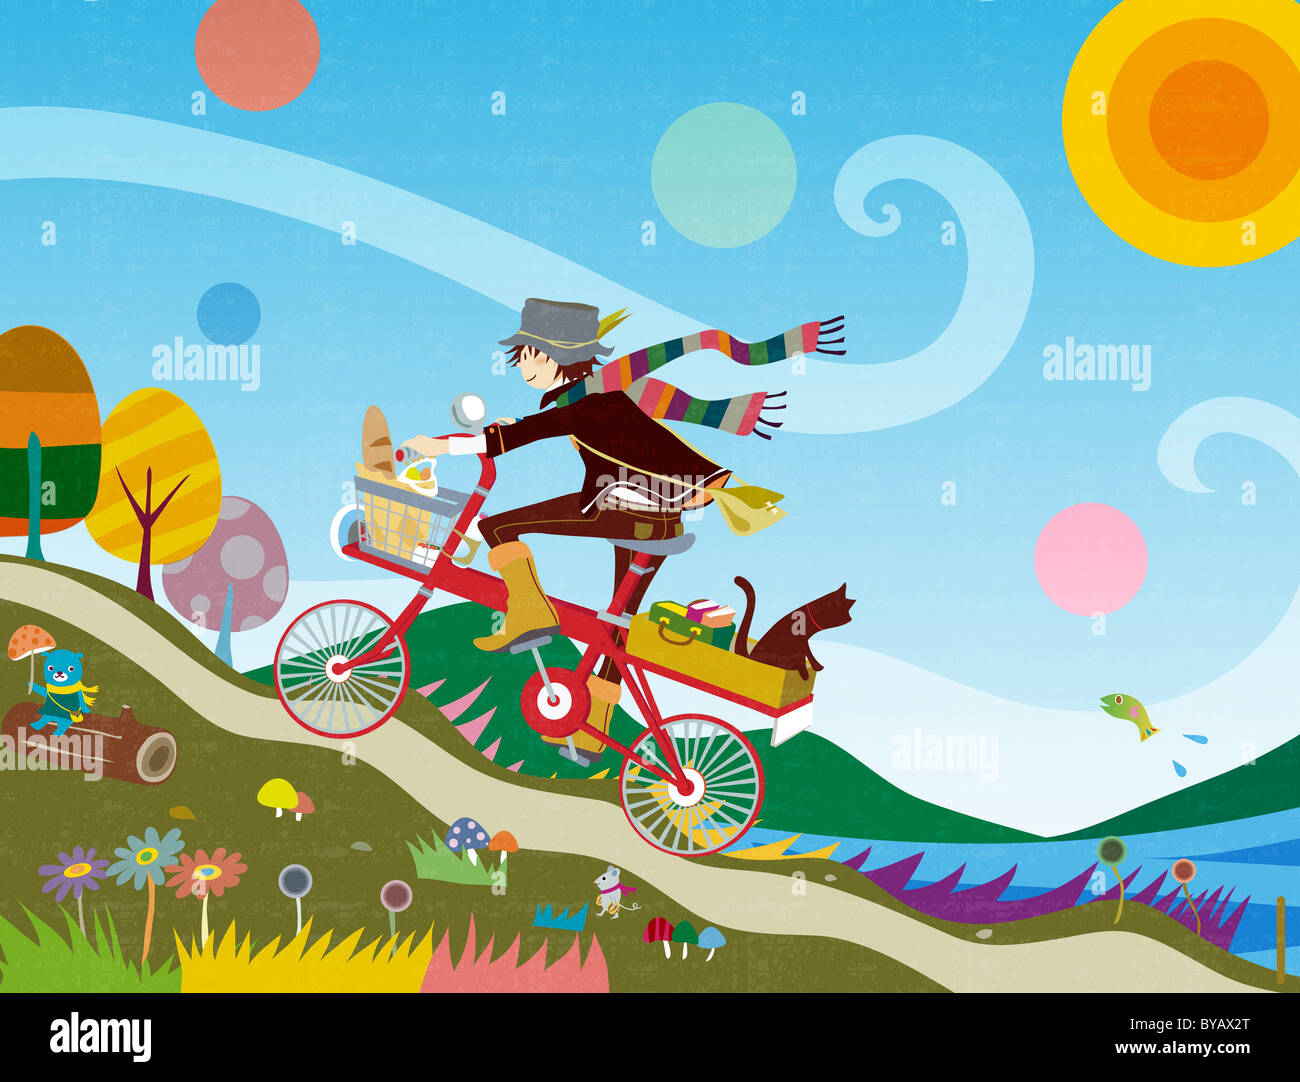 Illustration of a young woman riding a bicycle trough a fanciful scene - Stock Image